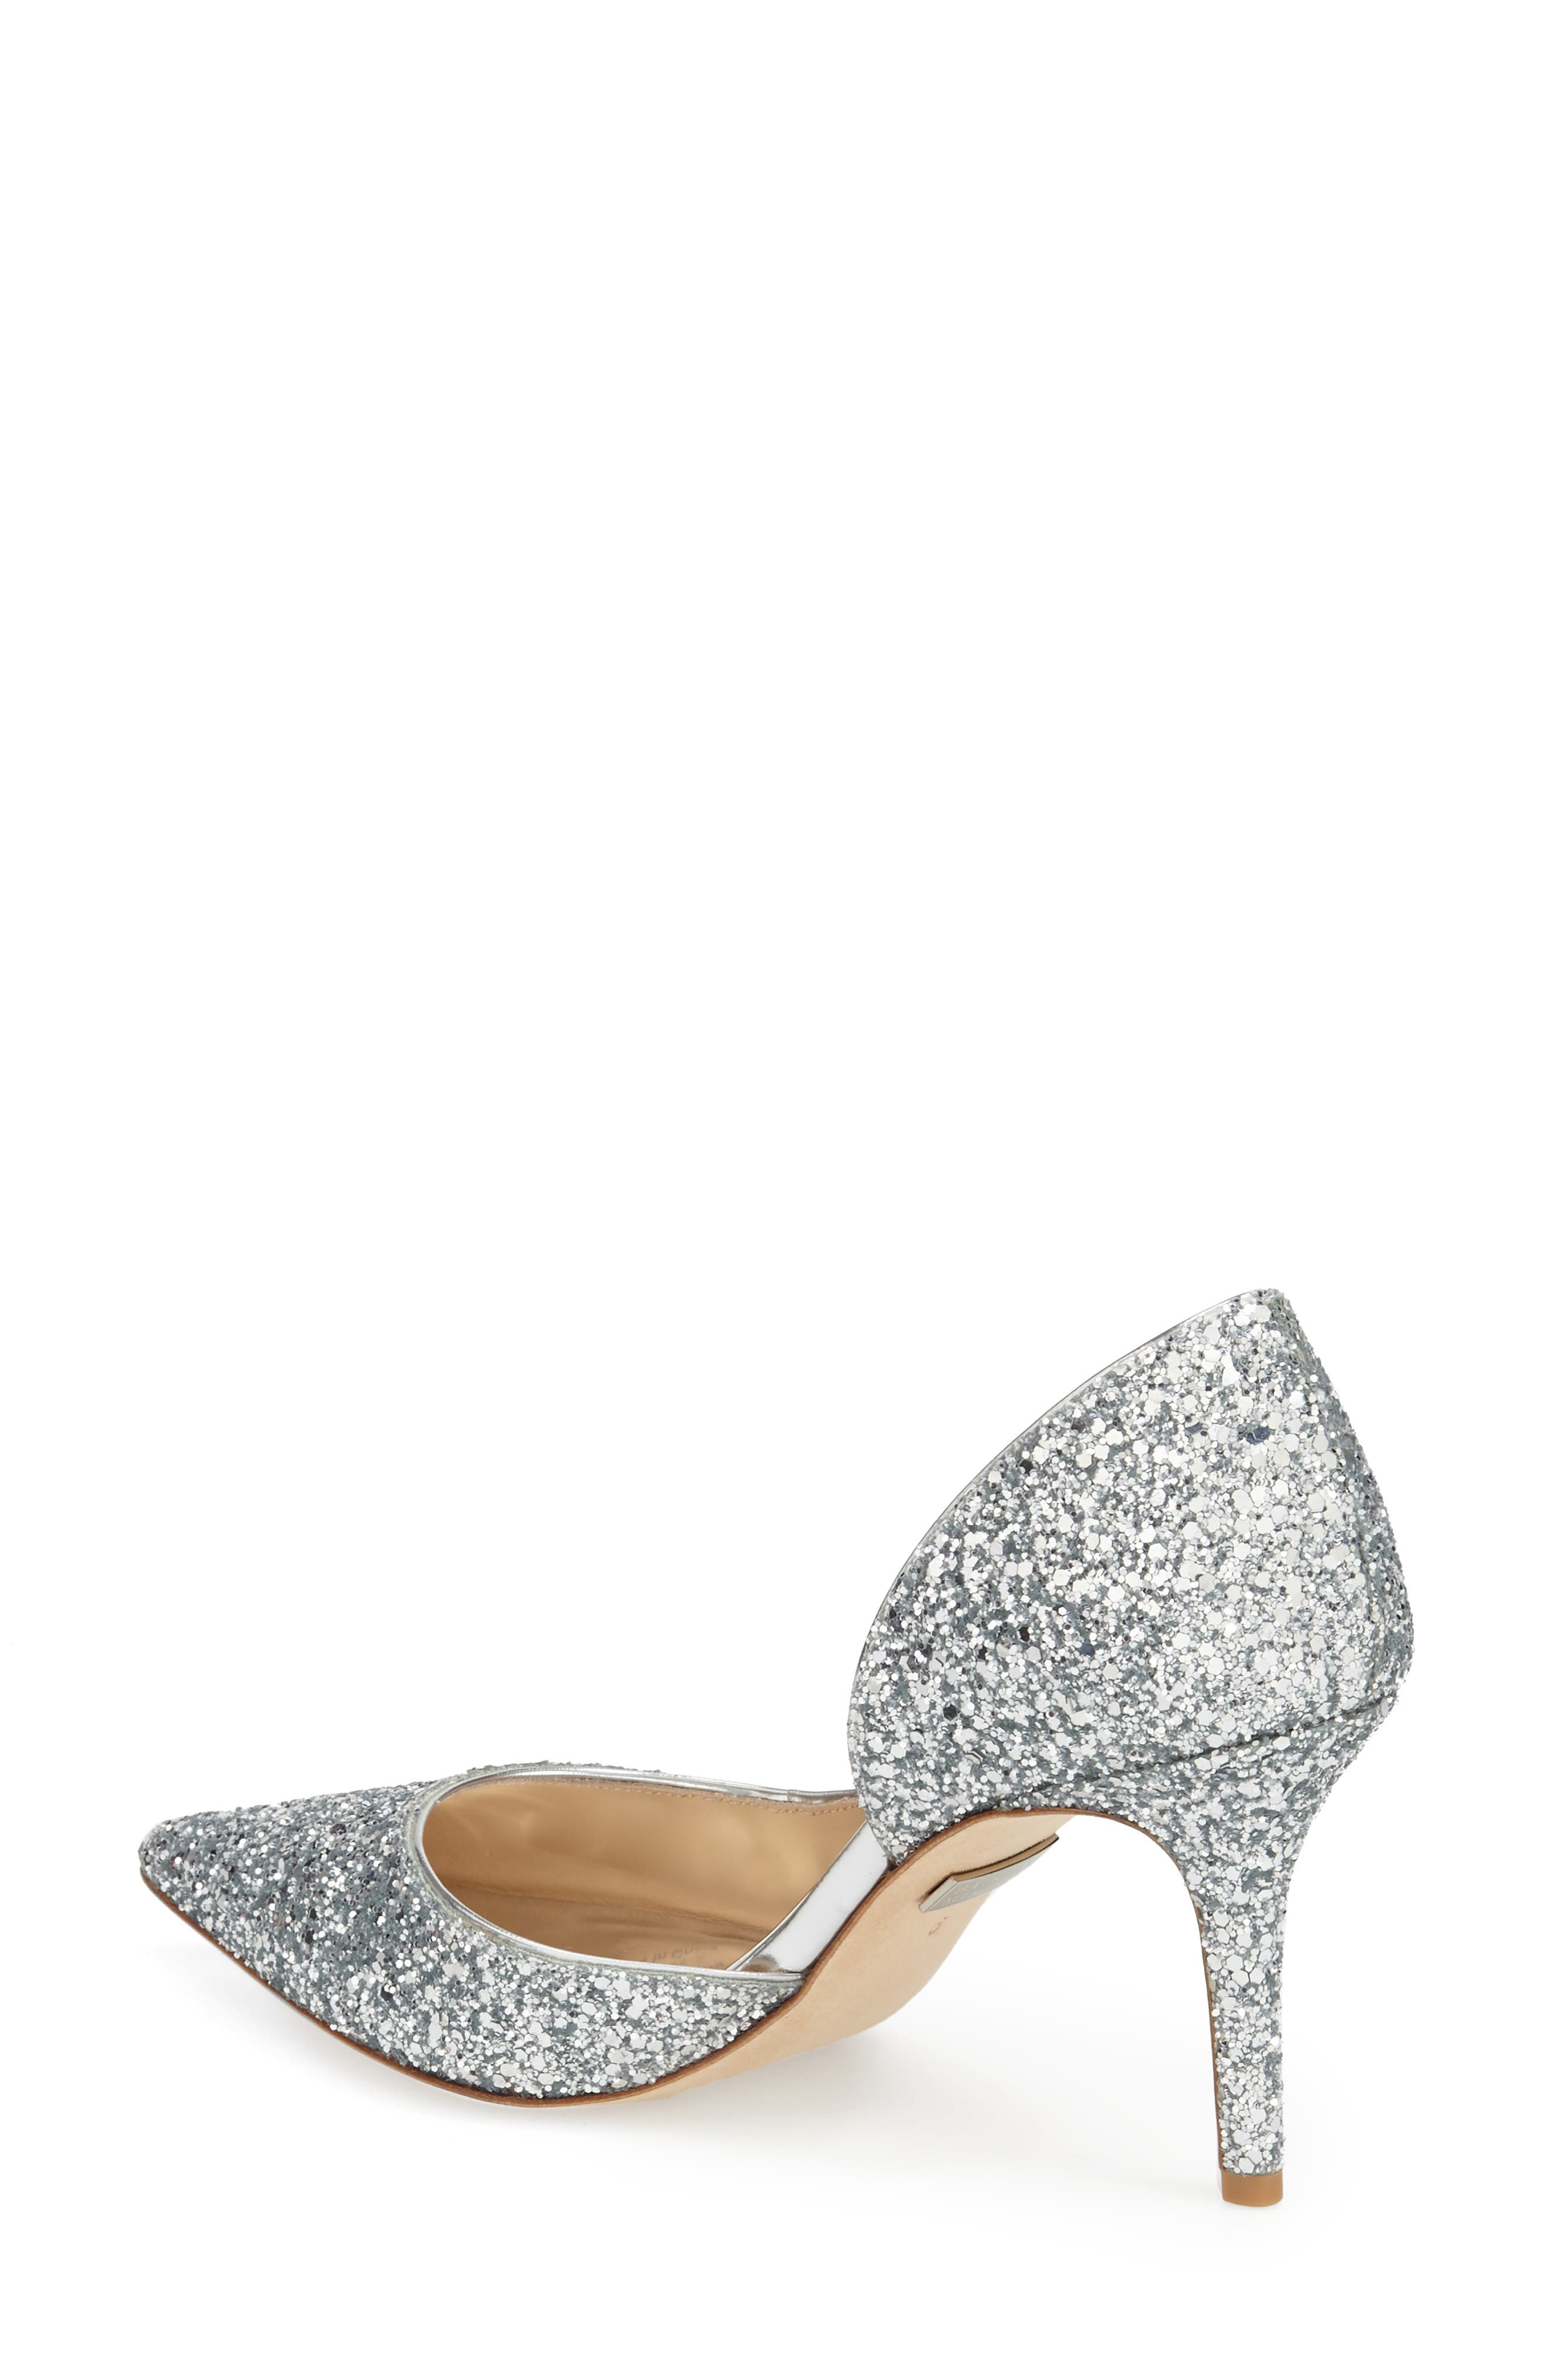 'Daisy' Embellished Pointy Toe Pump,                             Alternate thumbnail 5, color,                             SILVER GLITTER FABRIC